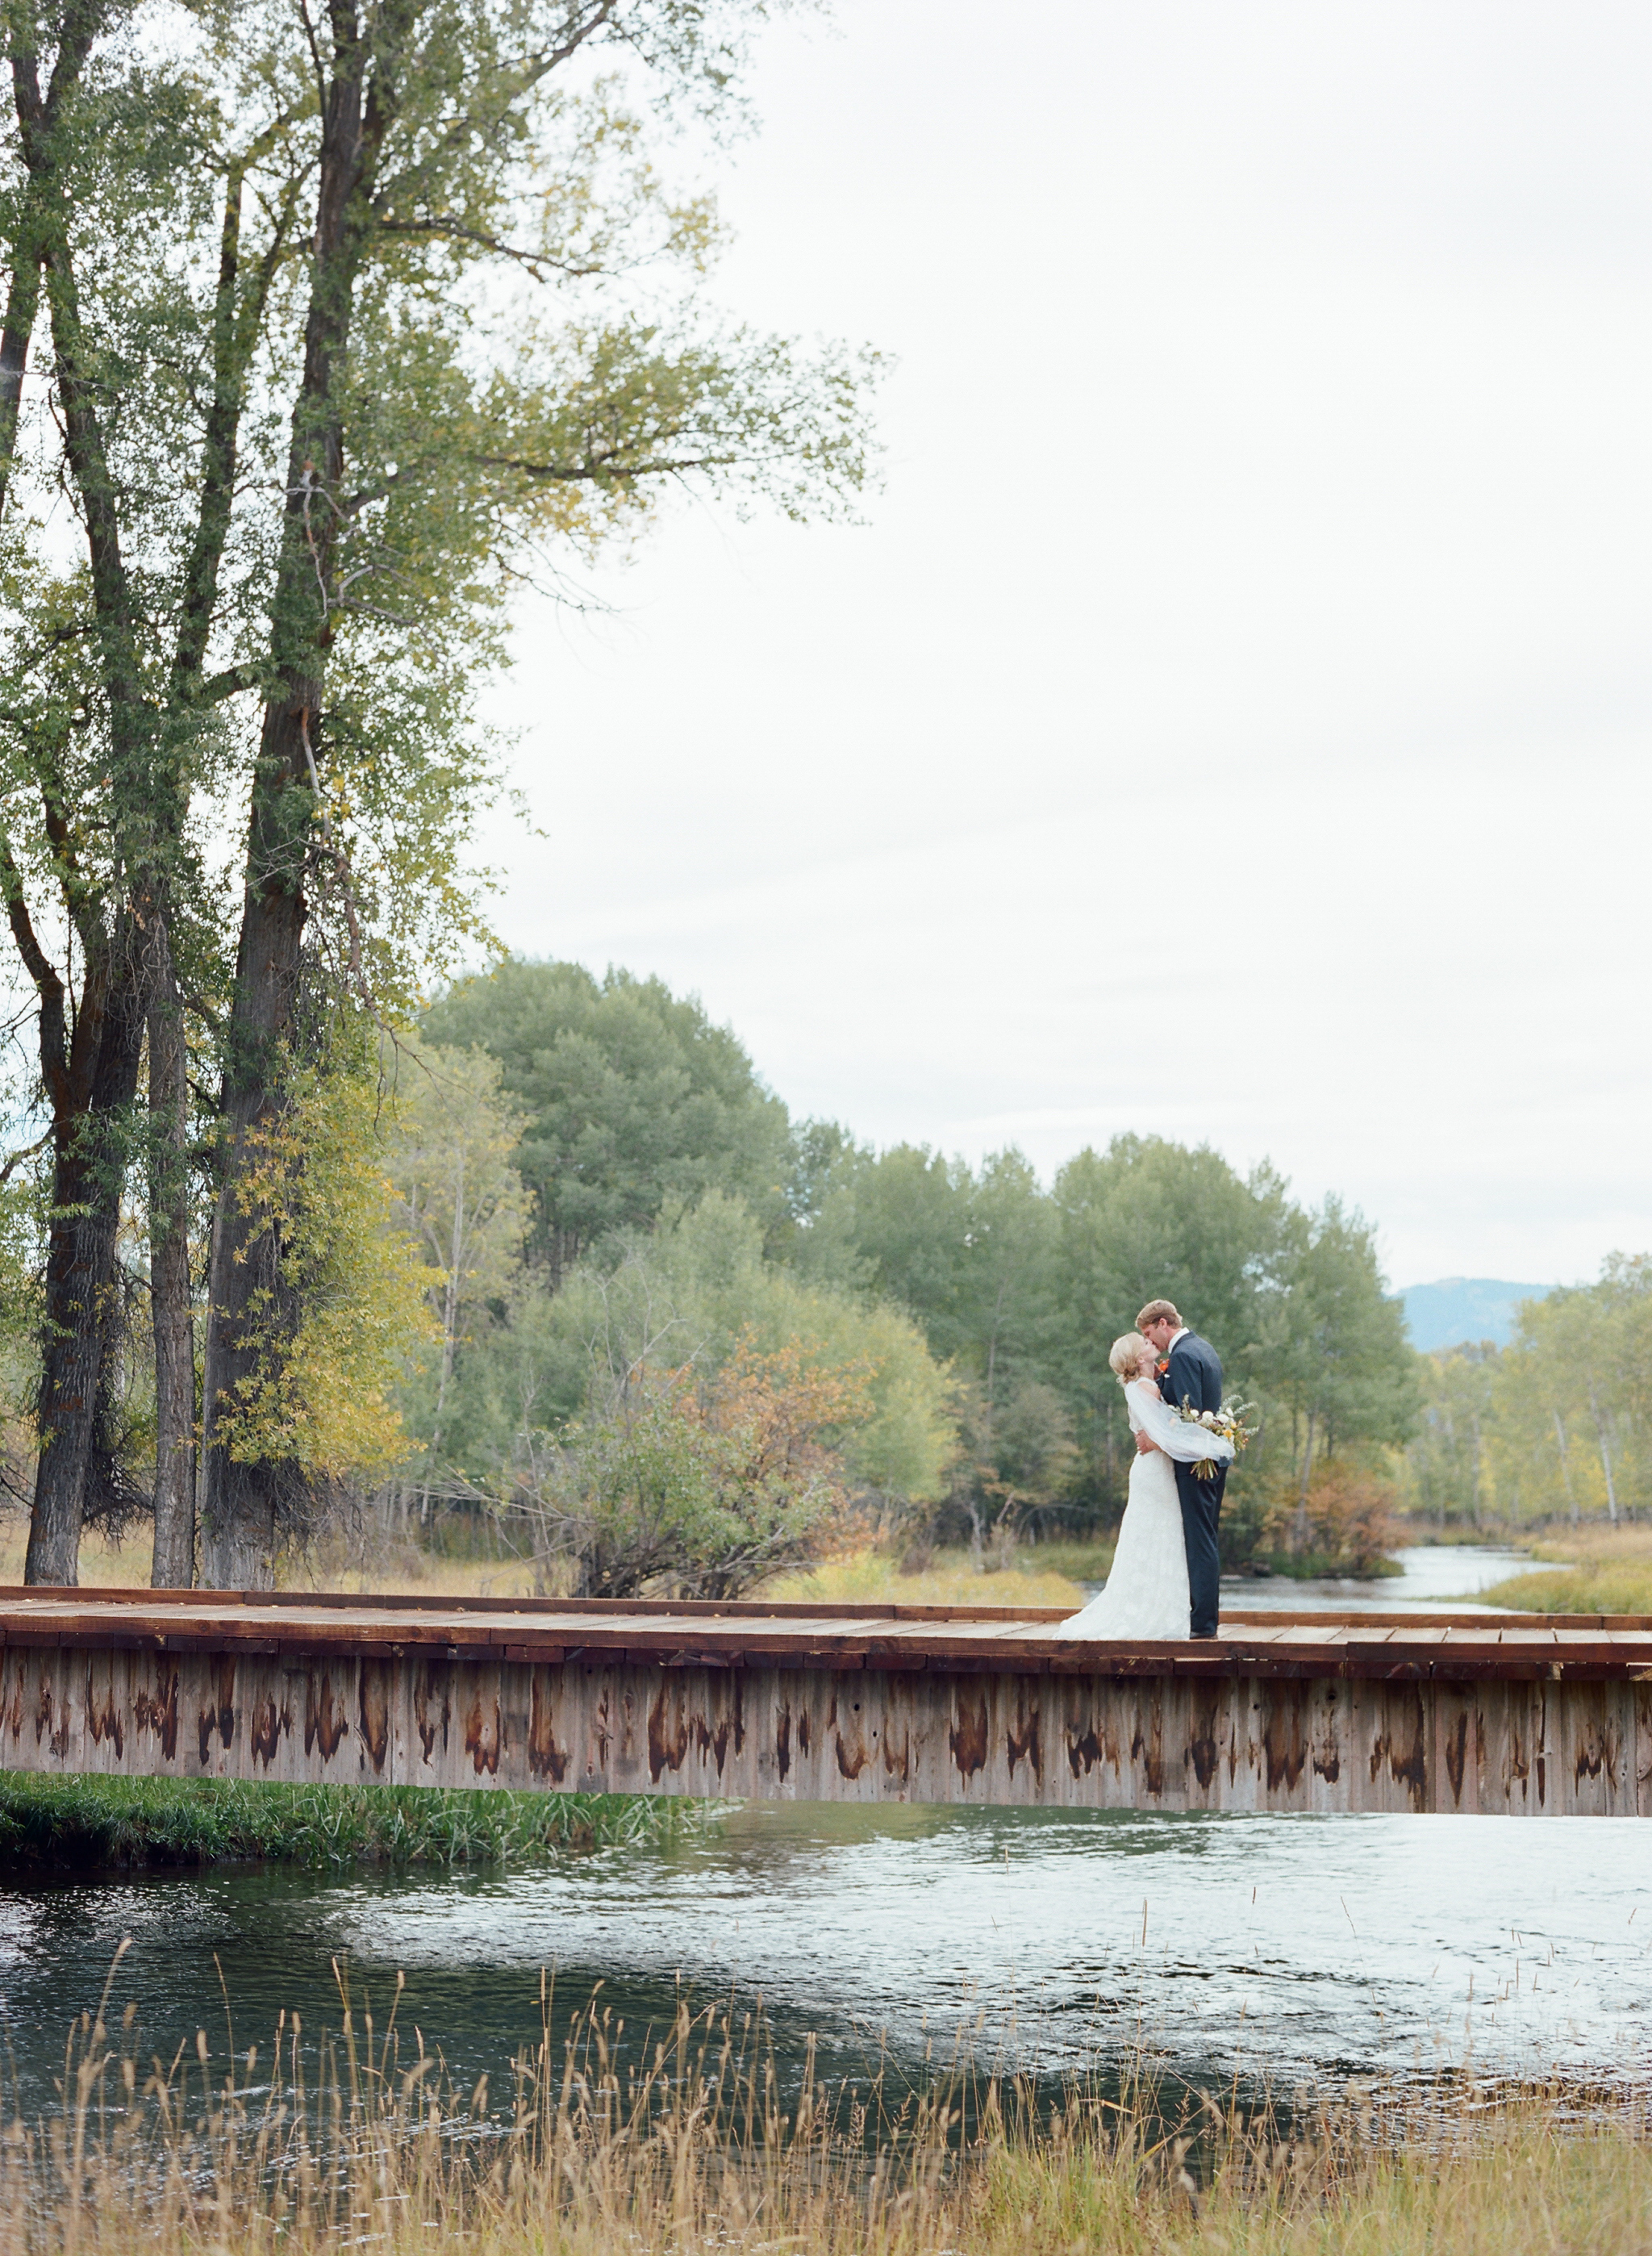 Planning an Outdoor Wedding Between Seasons? Read This Guide First